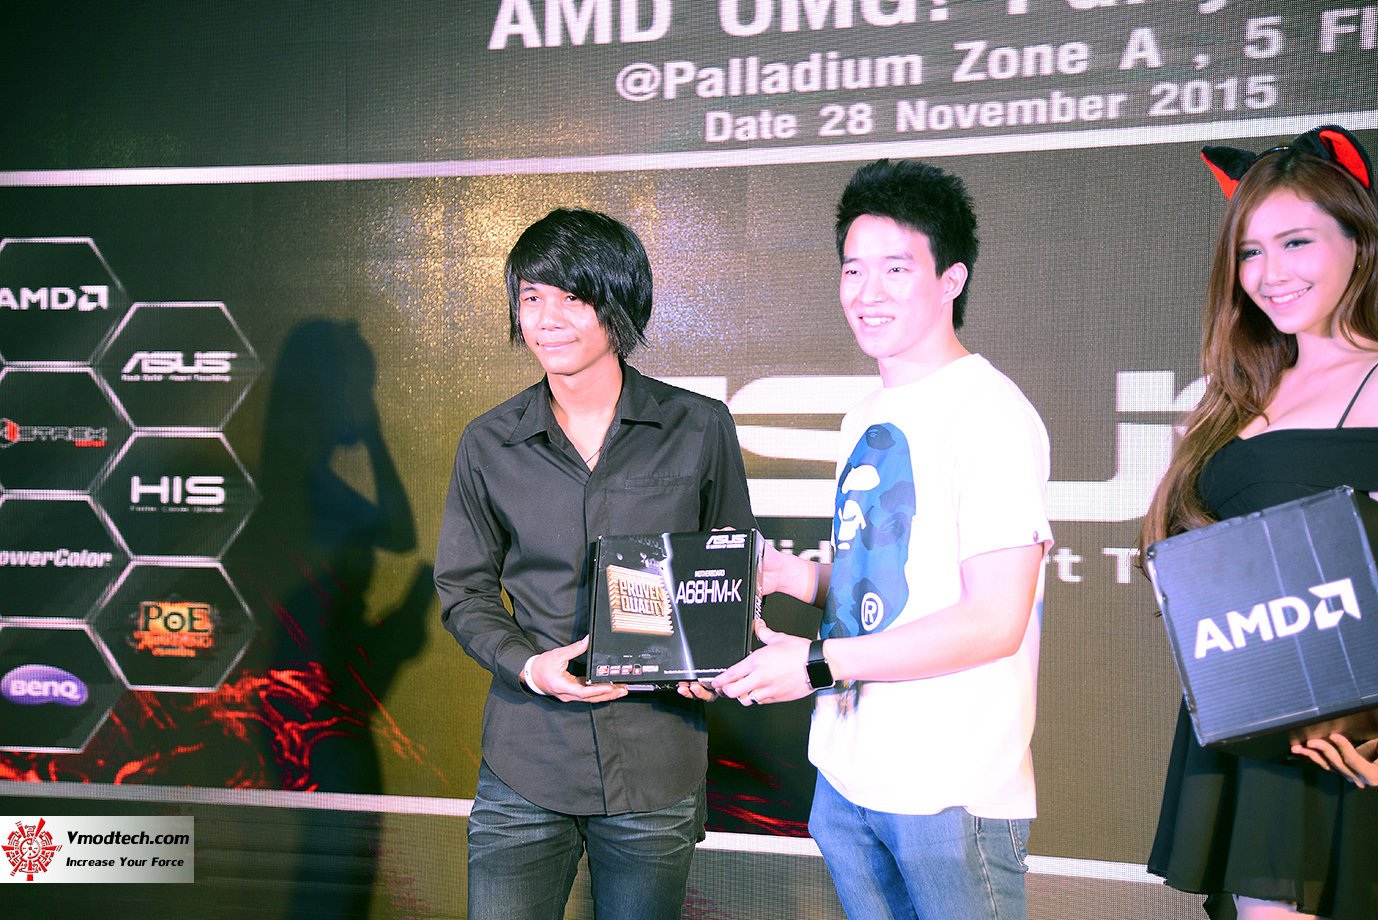 dsc 7151 AMD OMG! Party 2015 (AMD Overclock Modding Gaming Party 2015)